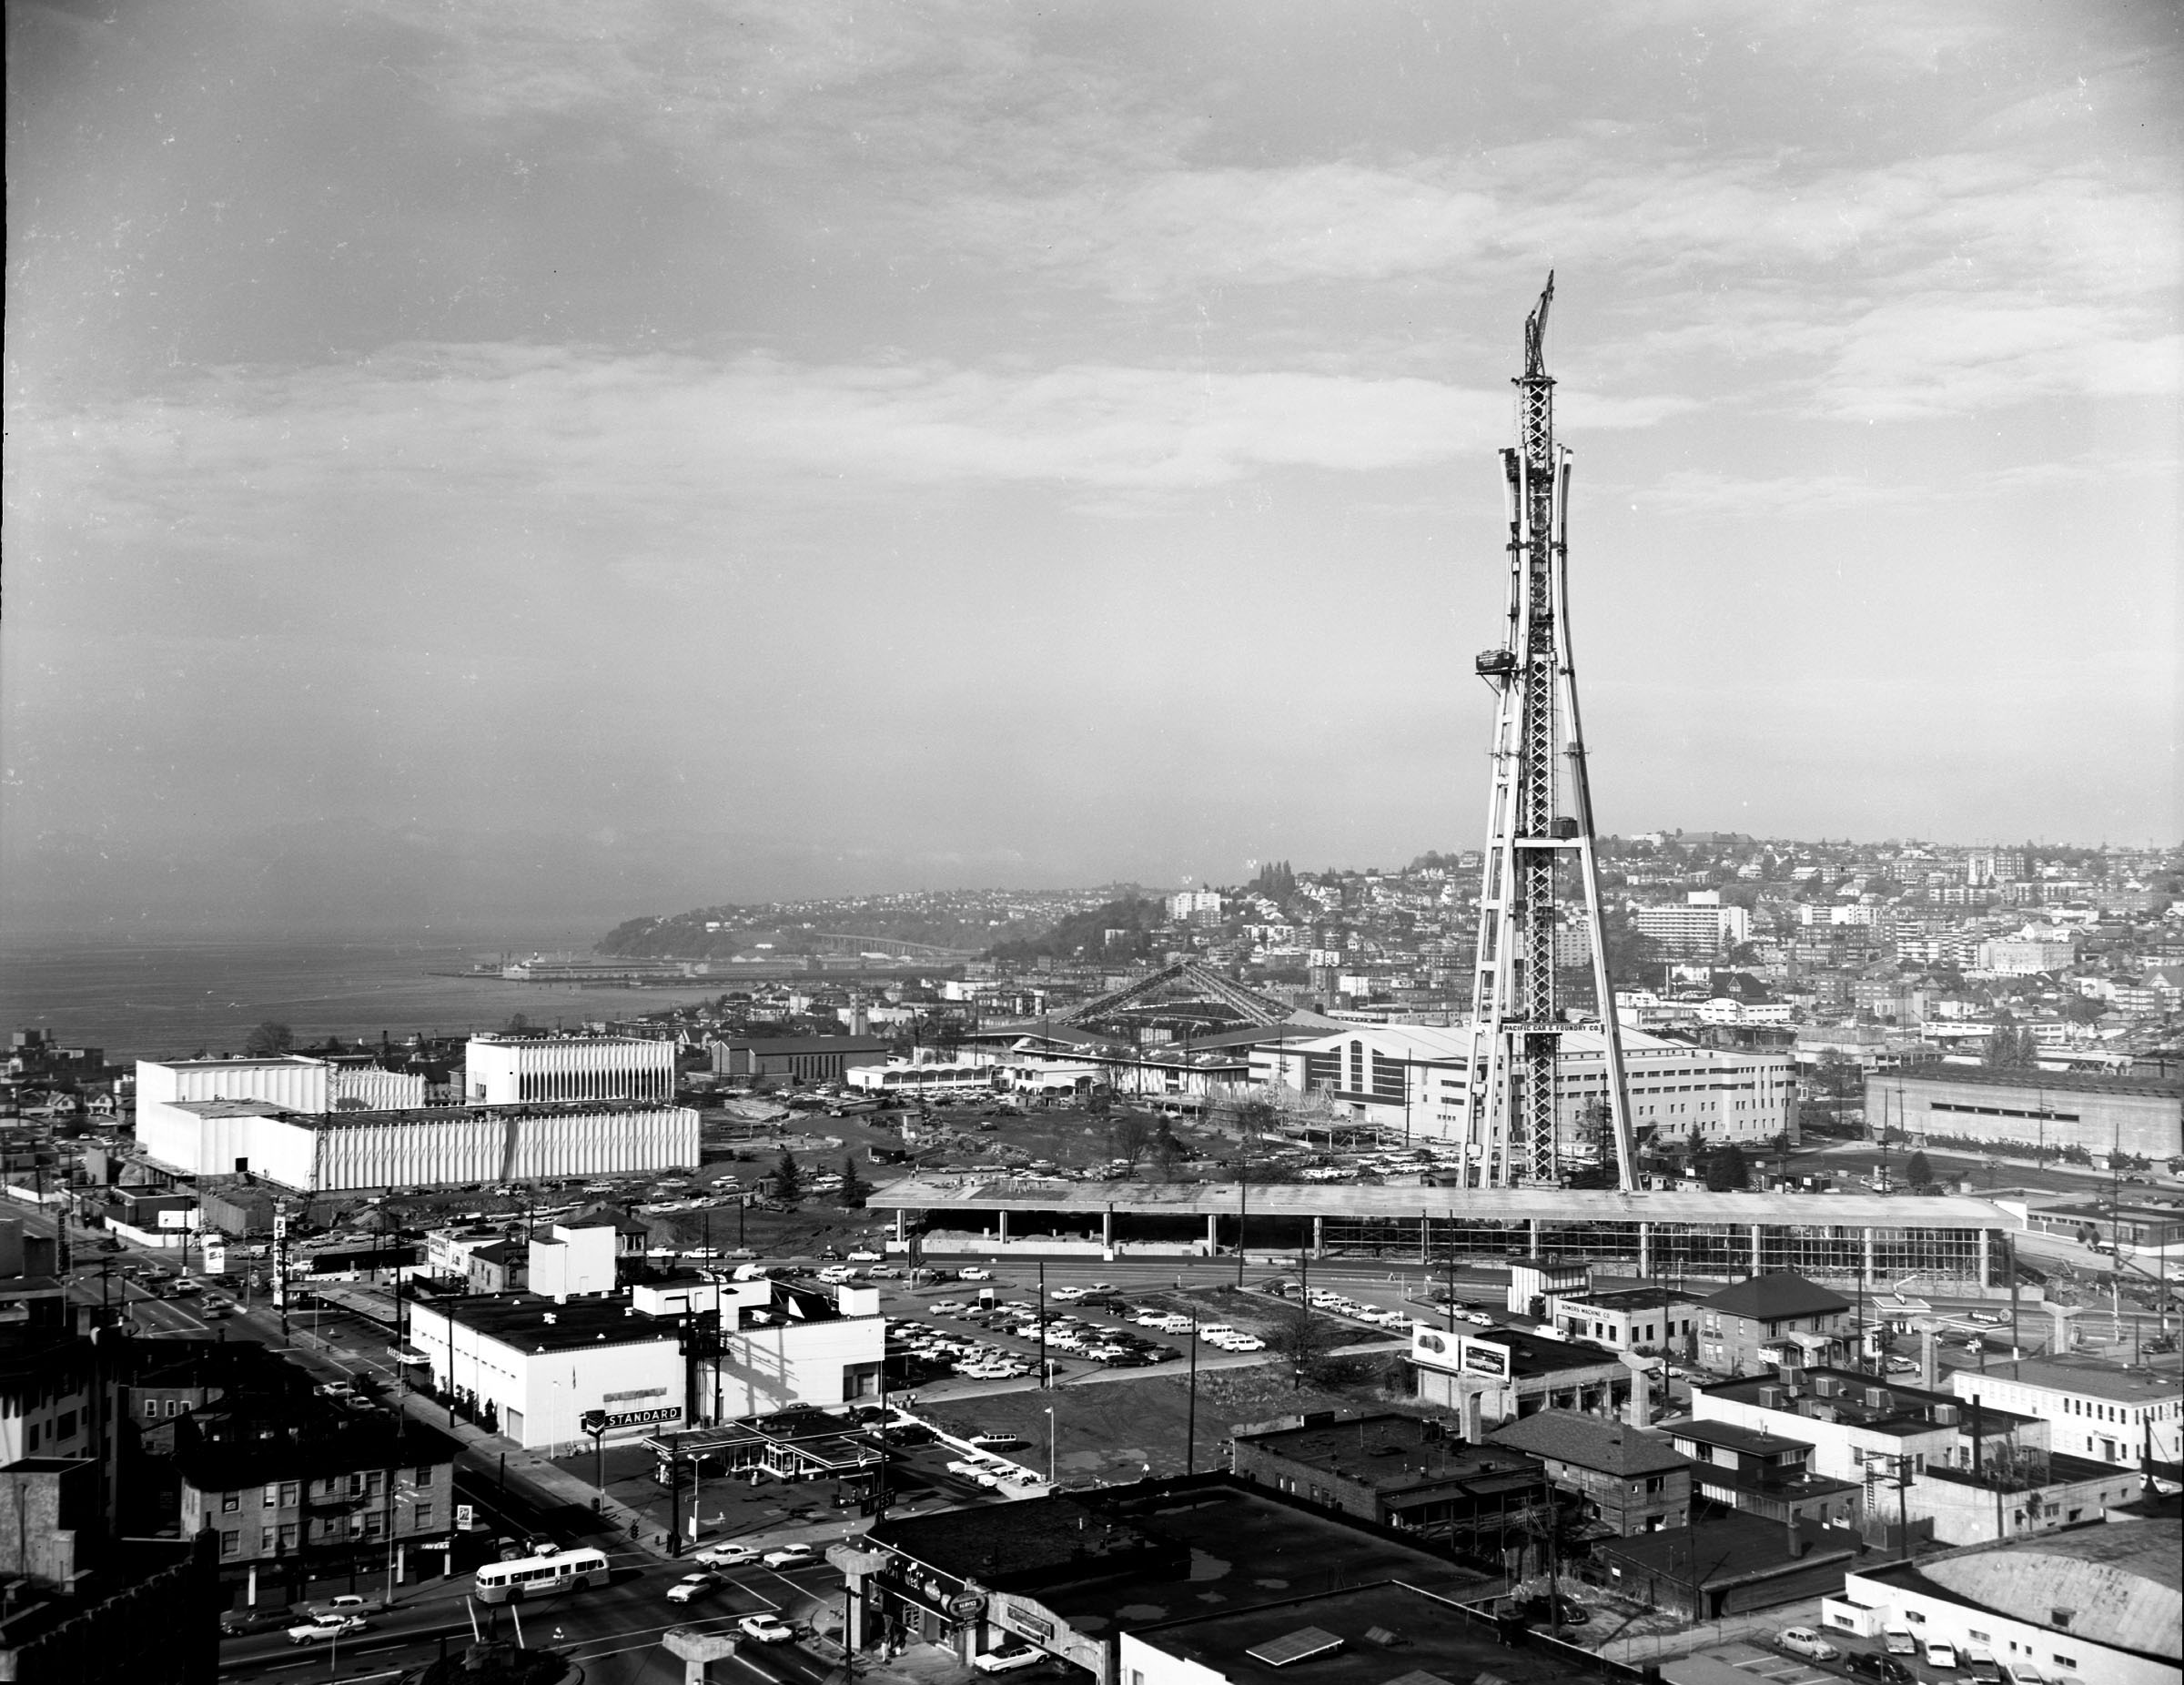 File Space Needle Under Construction 1961 From: built in seattle